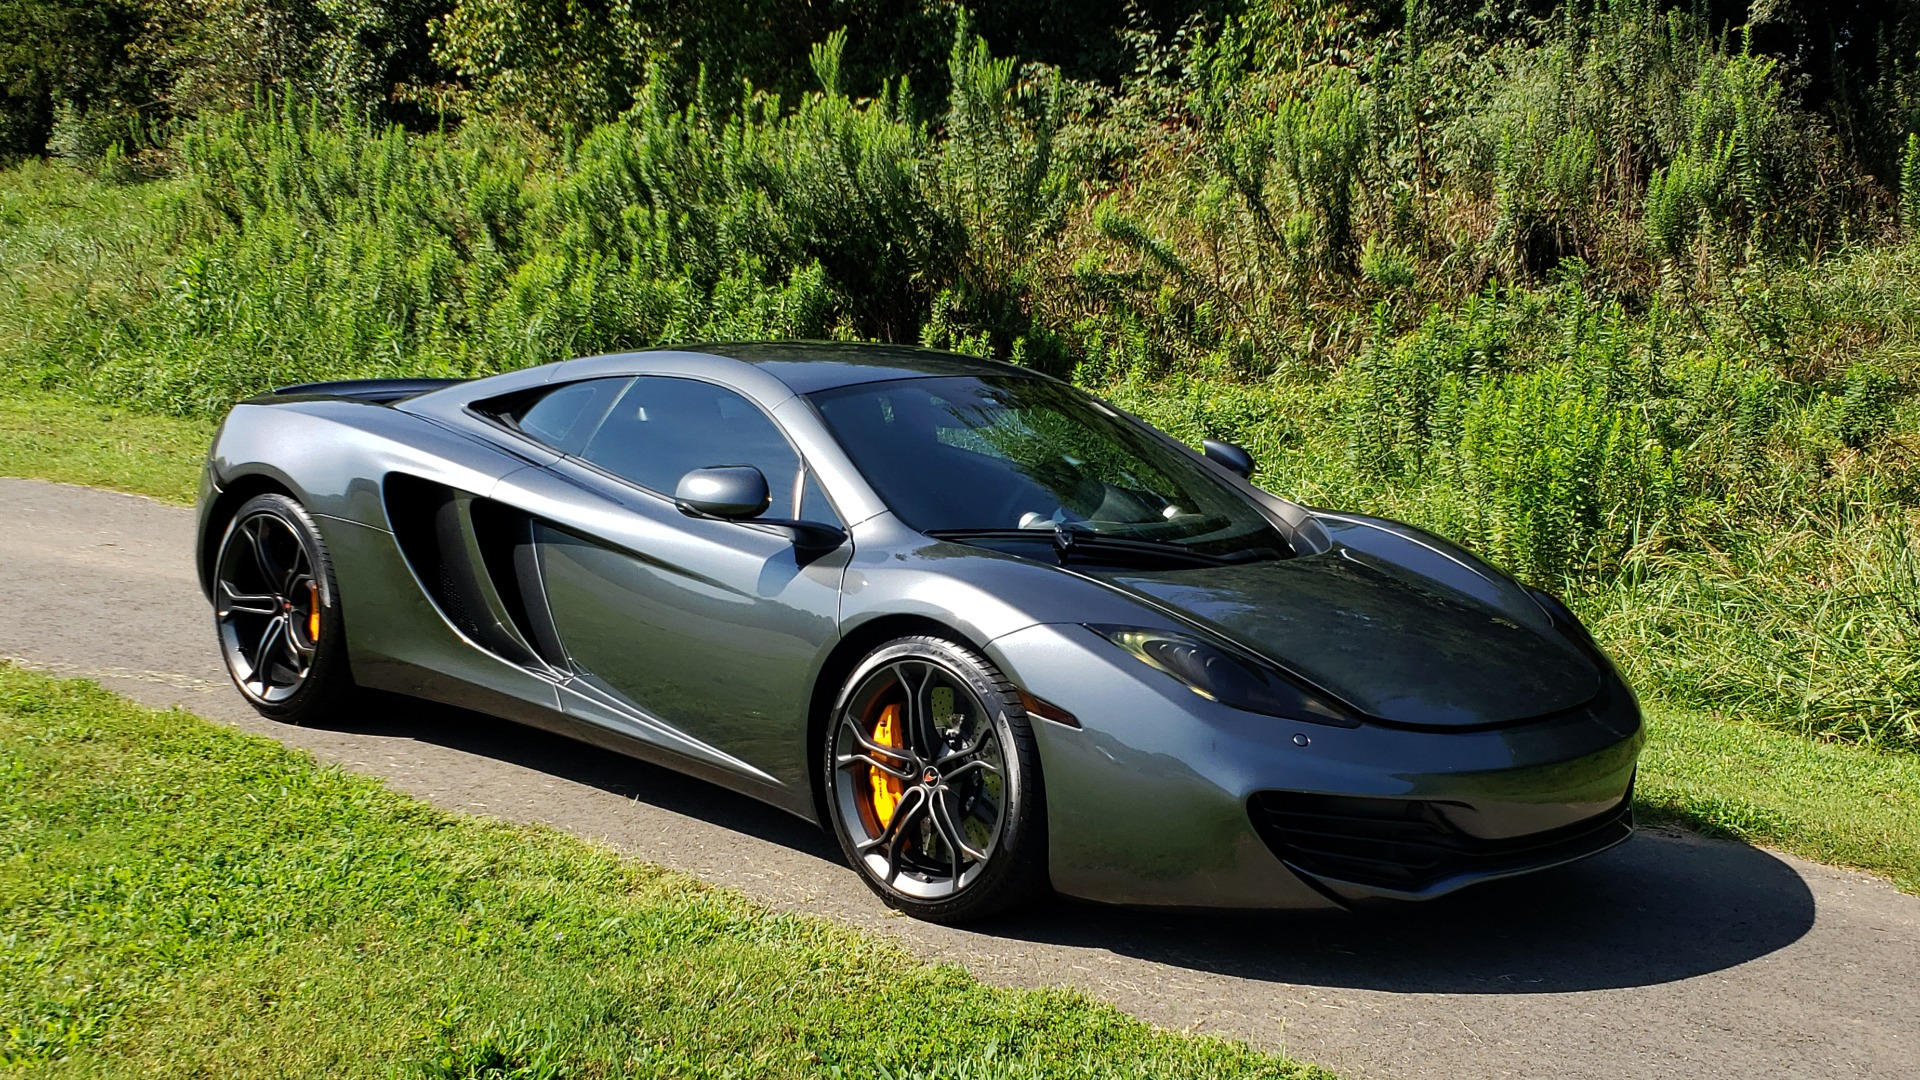 Used 2012 McLaren MP4-12C COUPE / 3.8 L V8 592HP / AUTO / NAV / CCB / LOW MILES for sale $97,999 at Formula Imports in Charlotte NC 28227 19